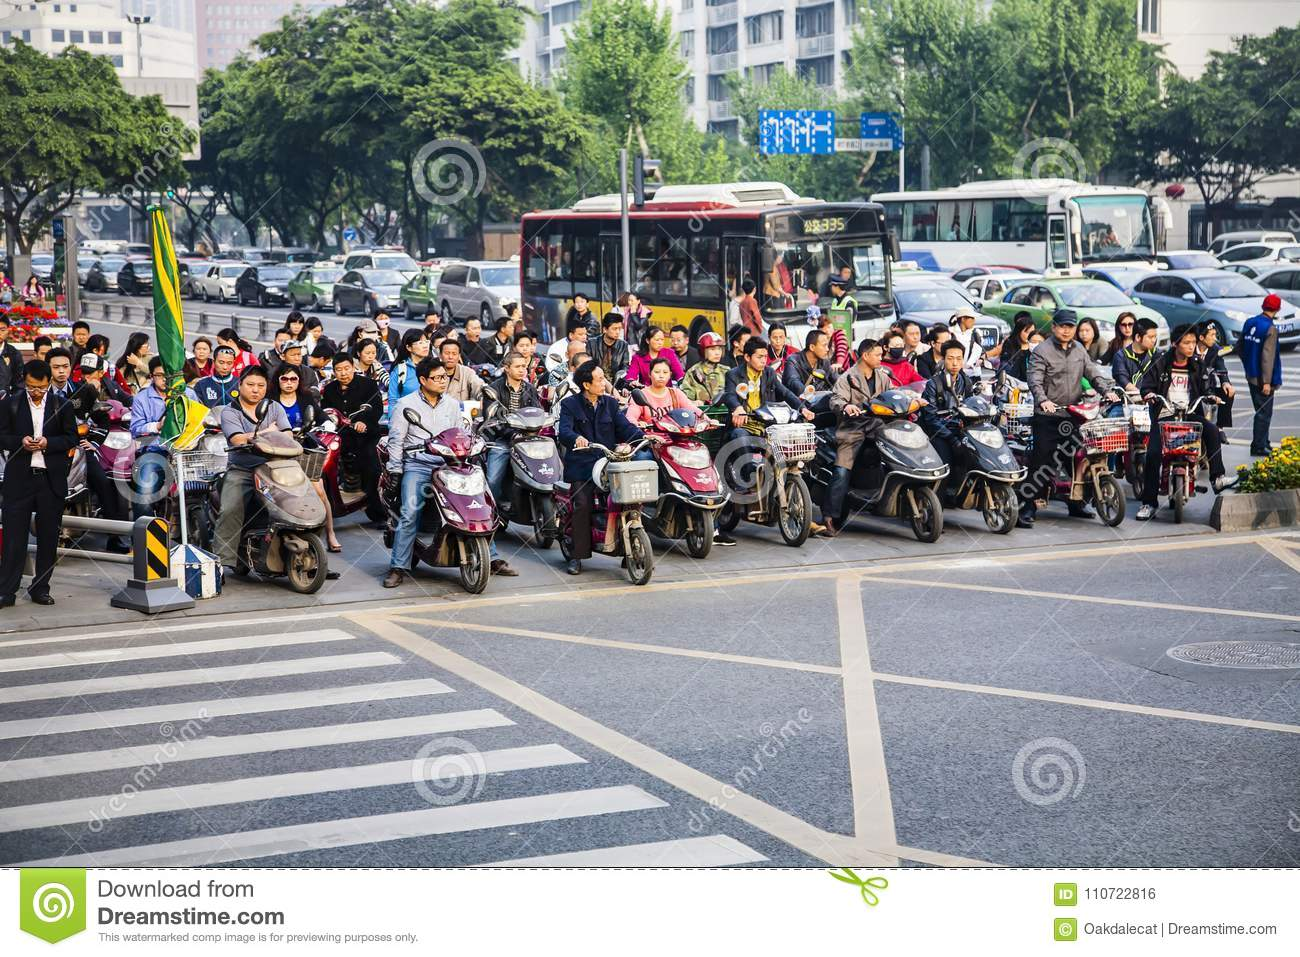 f7fecdbbf936 A throng of Chinese people on their way to work via foot